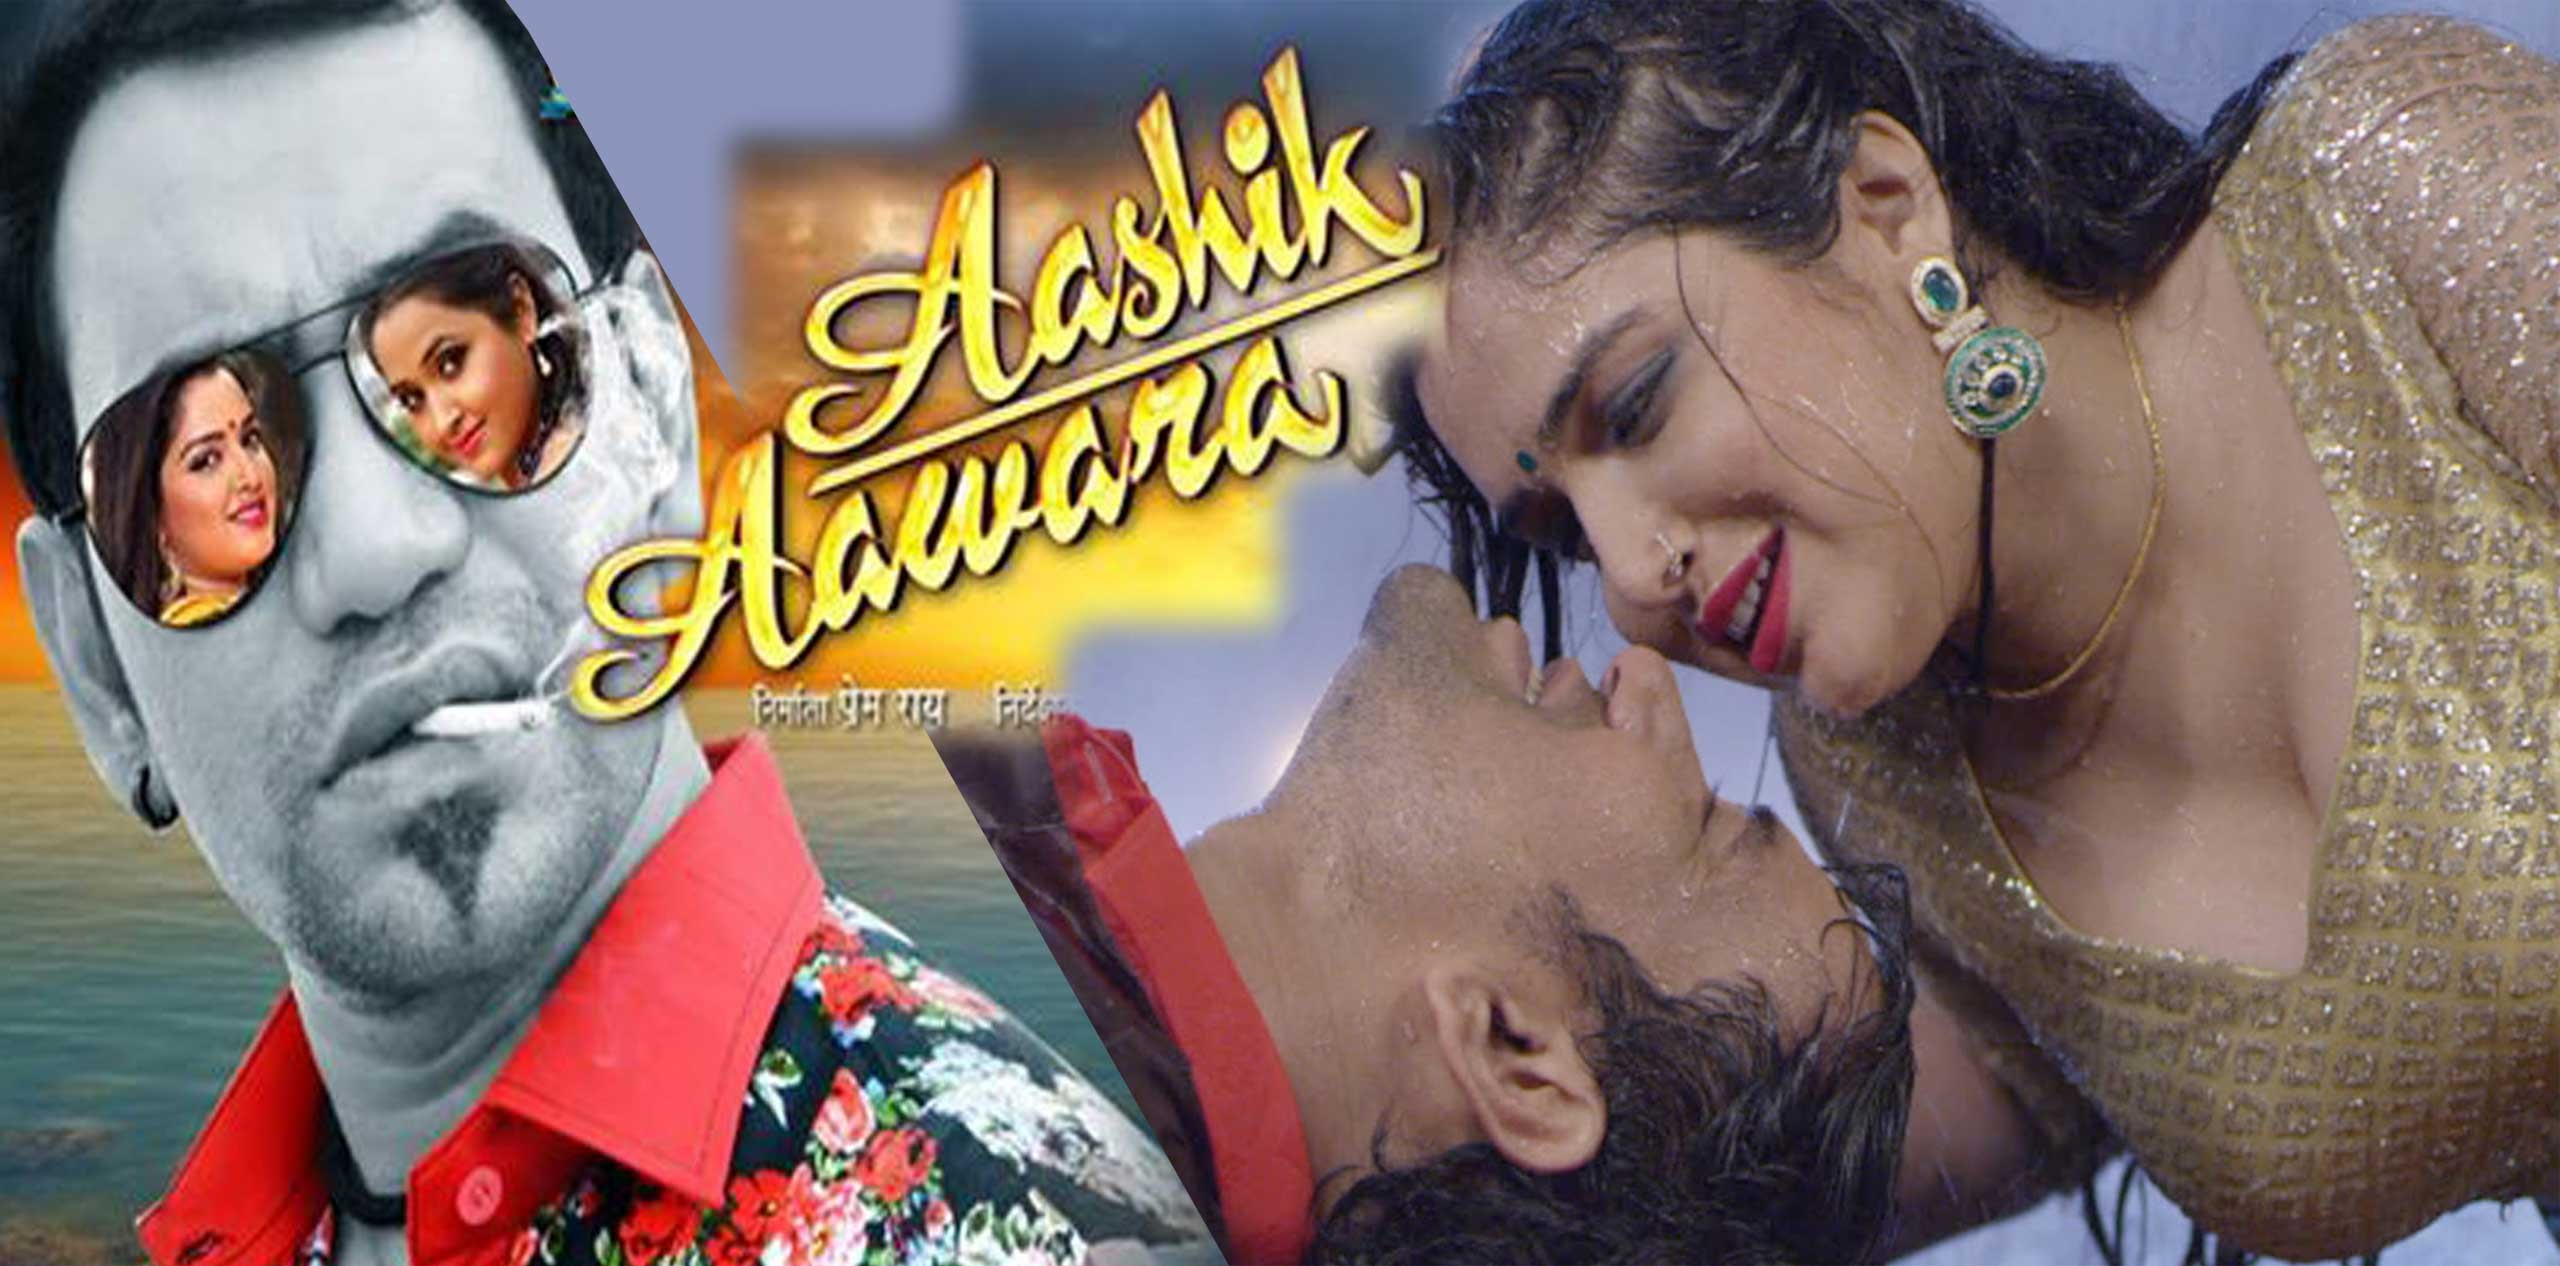 Bhojpuri Aashiq Aawara Movie Review & Rating | Box Office Collection | Hit or Flop